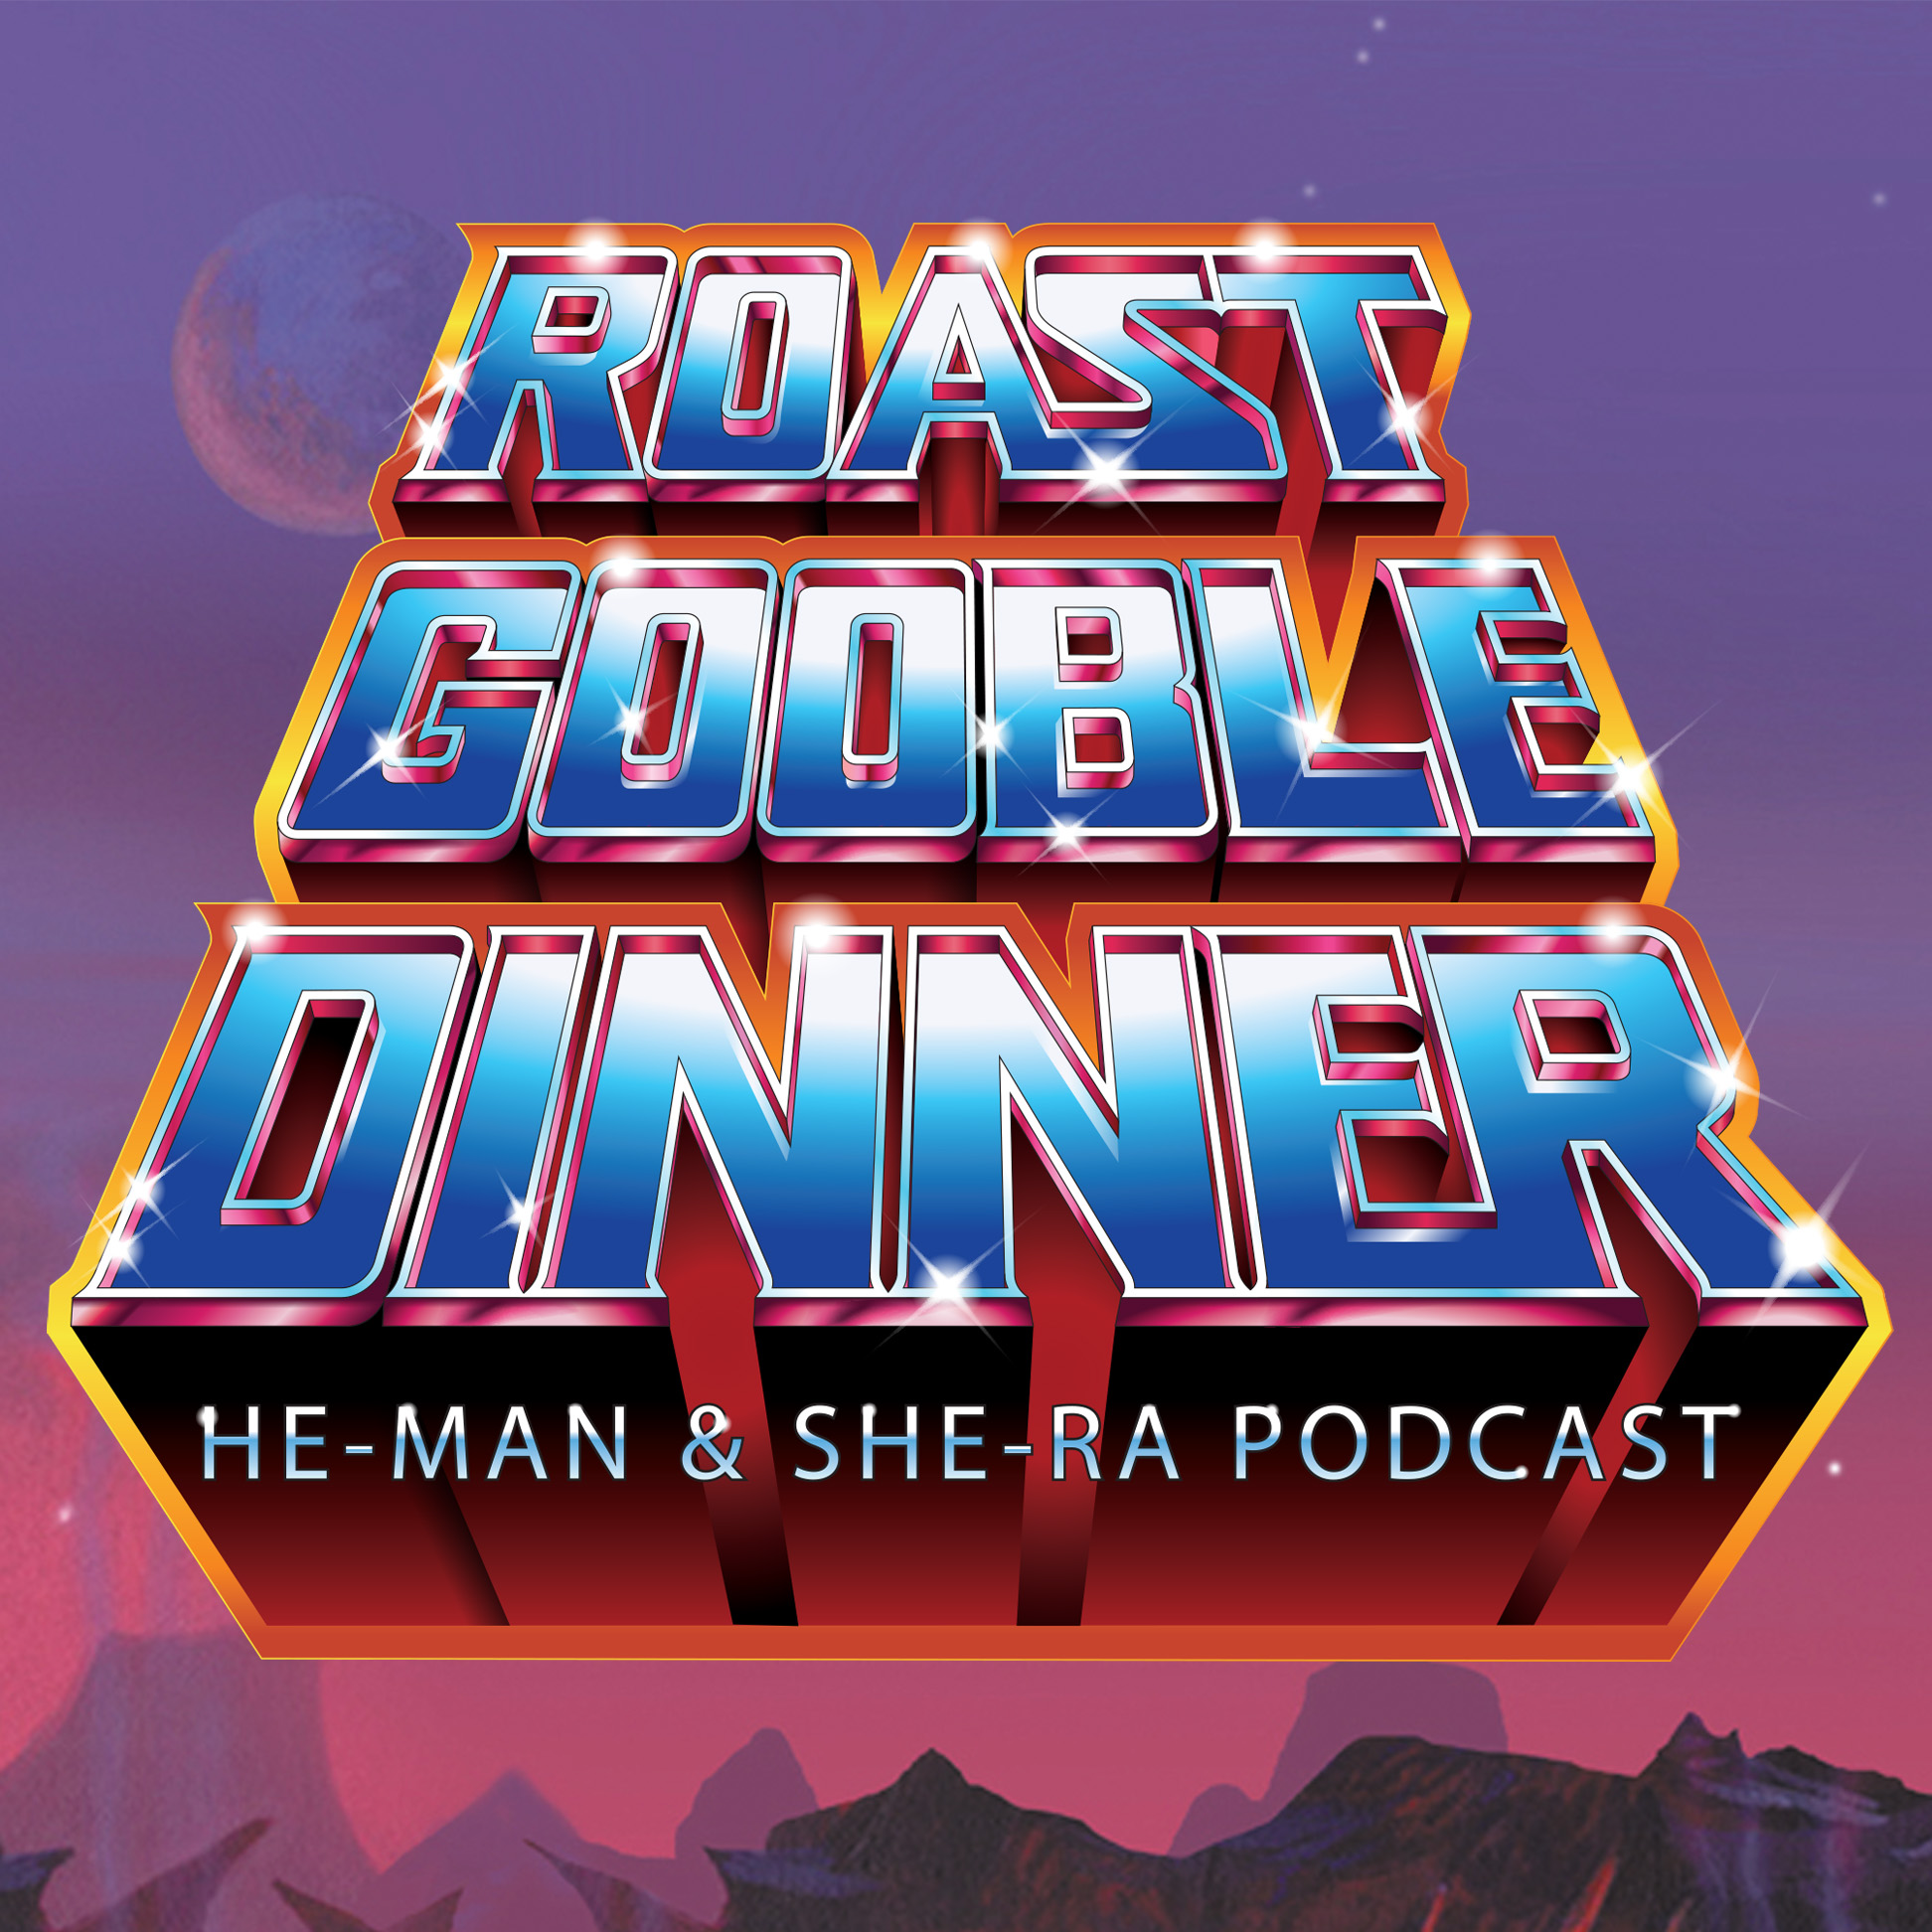 Episode 123 - He-Man.org's Roast Gooble Dinner